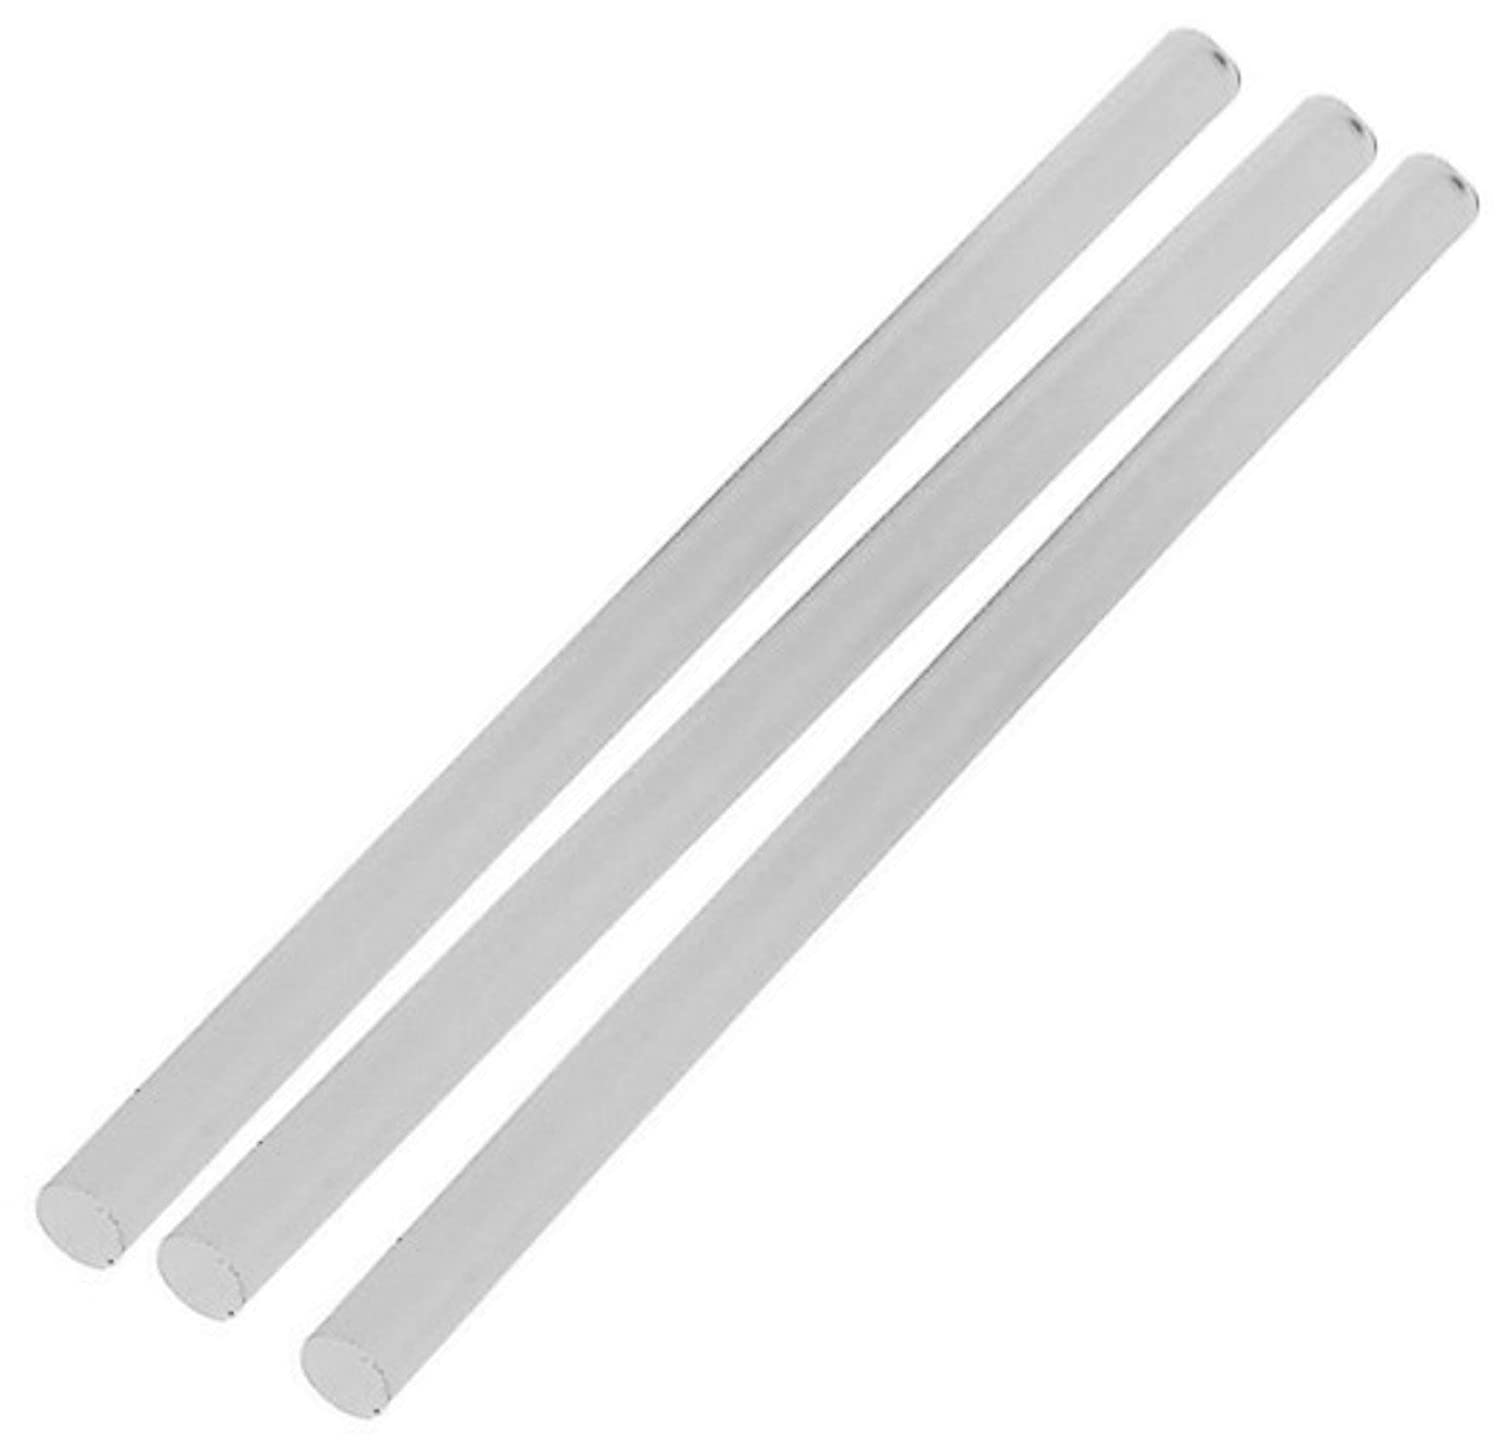 3 lengths of 6mm x 250mm White Plastic/Acetal Rod Round Bar A-Stops